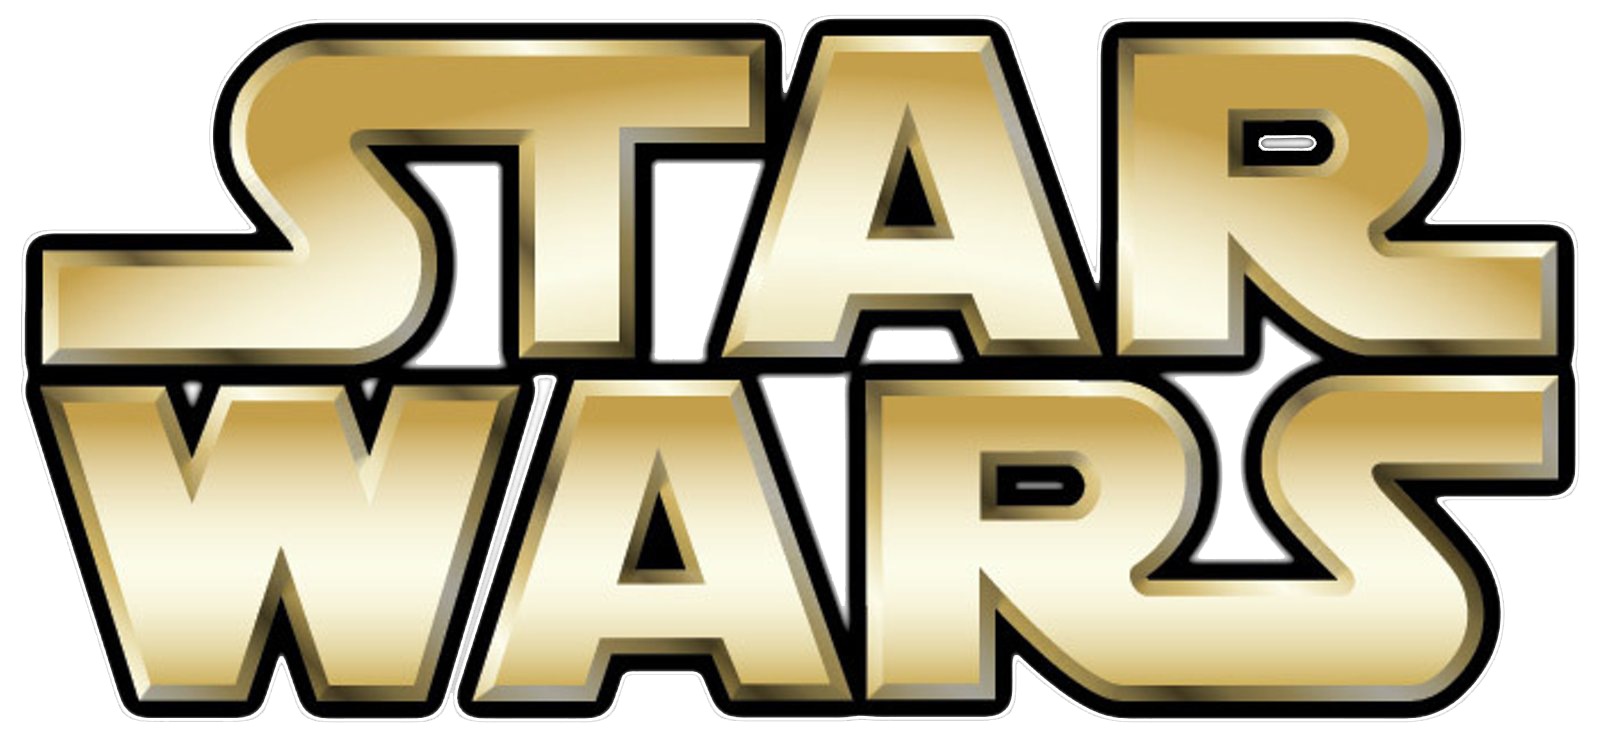 Starwars clipart logo. Star wars png images